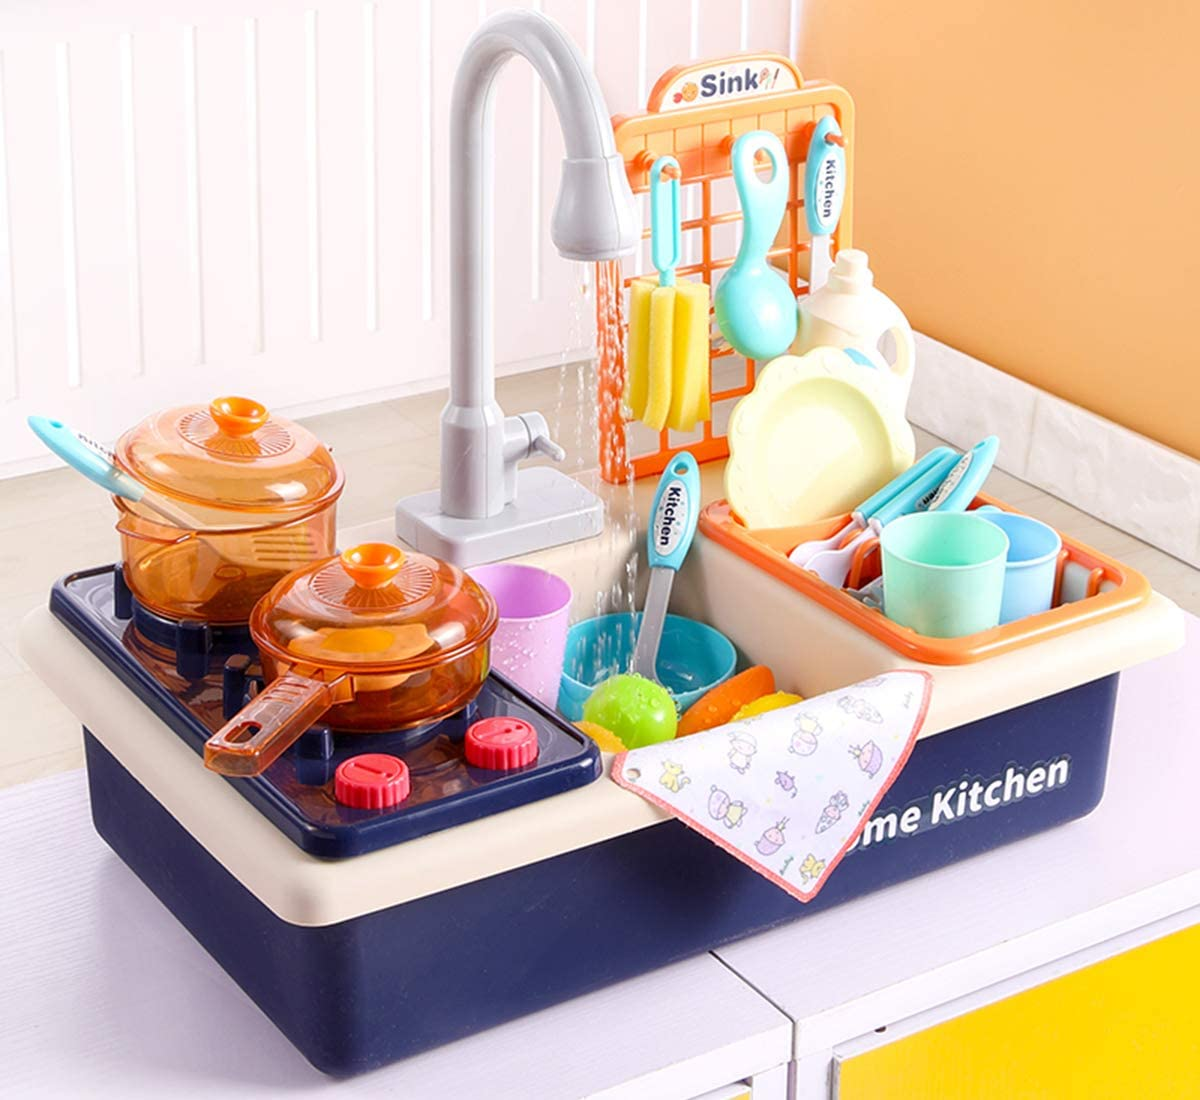 Play Kitchen Sink Toys with Automatic Faucets, Kids Kitchen Set Dishwasher with Cooking Stove, Tableware and Accessories Pretend Role Play Toys for Toddlers Boys Girls Aged 2 3 4 5 6(Blue)